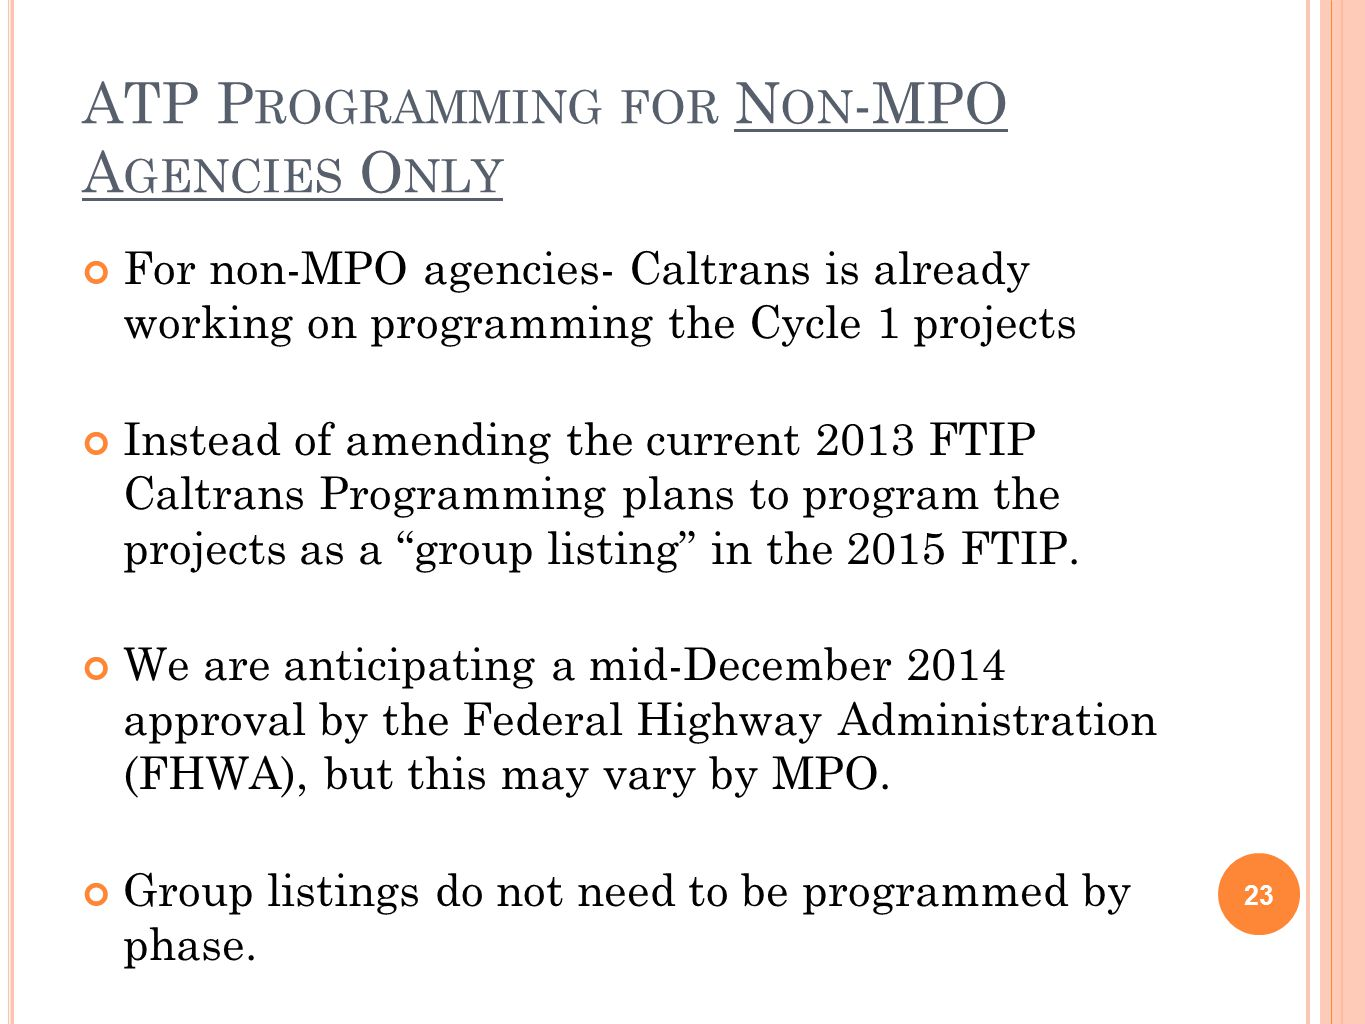 ATP P ROGRAMMING FOR N ON -MPO A GENCIES O NLY 23 For non-MPO agencies- Caltrans is already working on programming the Cycle 1 projects Instead of amending the current 2013 FTIP Caltrans Programming plans to program the projects as a group listing in the 2015 FTIP.